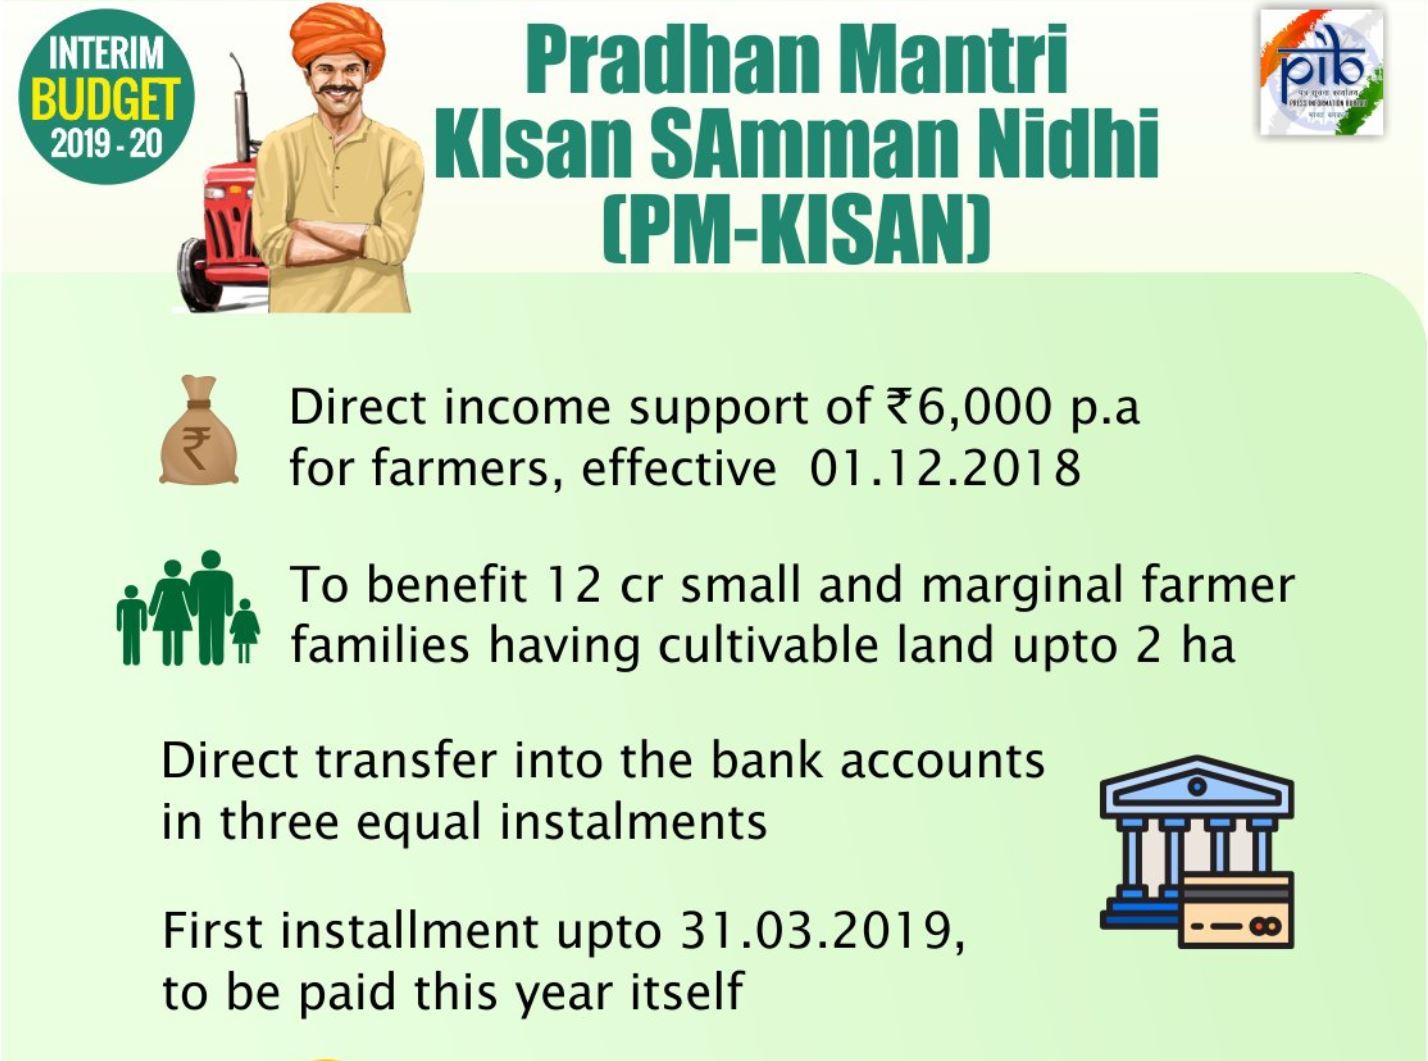 PM-KISAN disbursement slower than expected, only 40% done this year